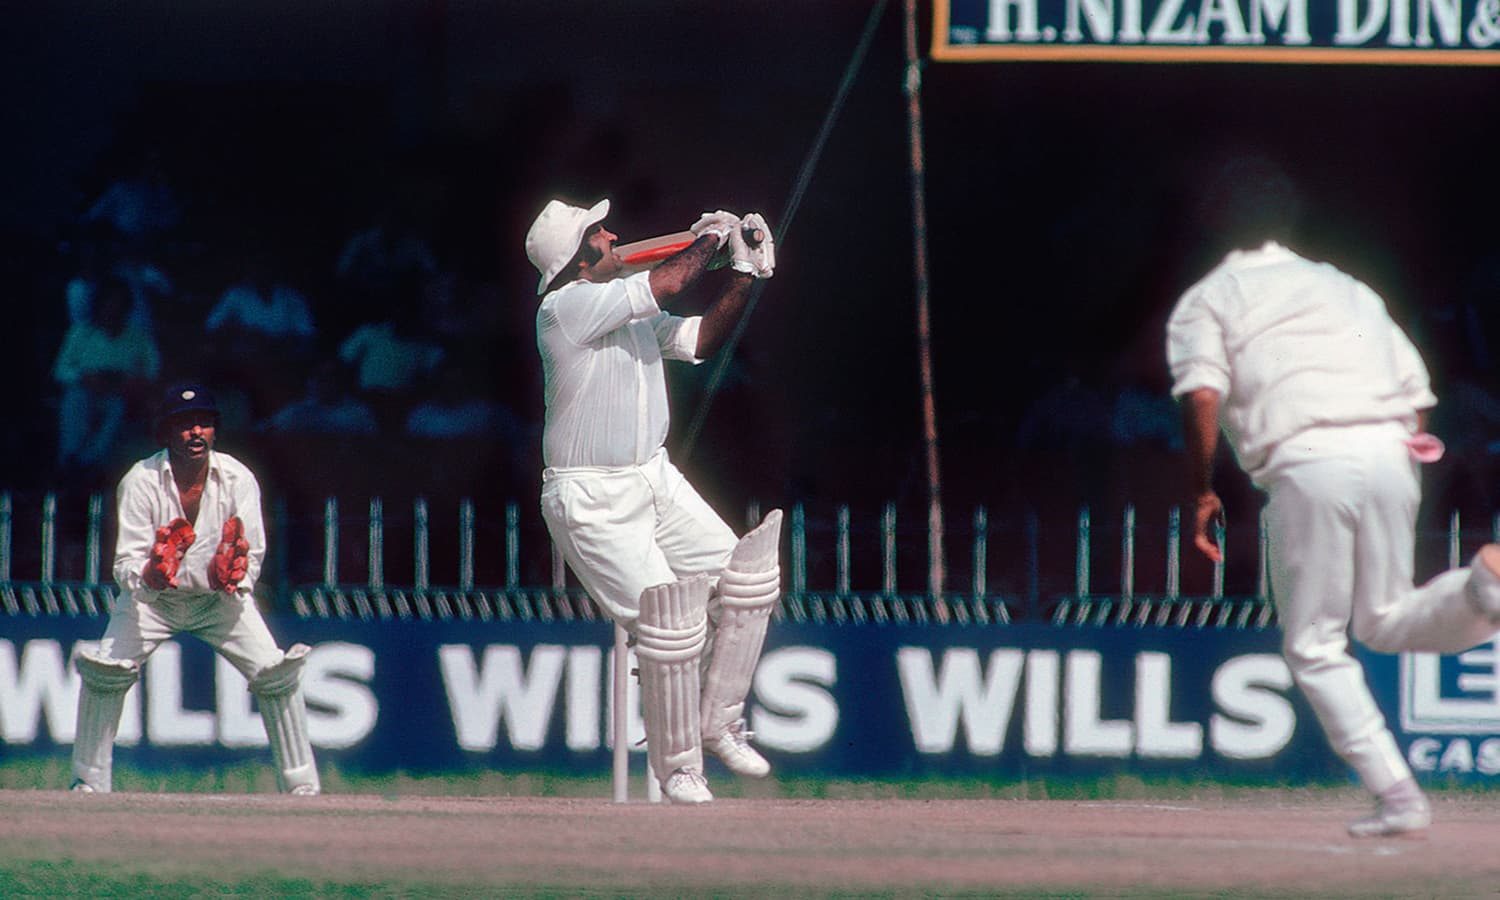 1978: Former Pakistan captain, Mushtaq Muhammad, hooks an Indian bowler during the exciting 1978 Test at National Stadium. (Pic: Patrick Edger)